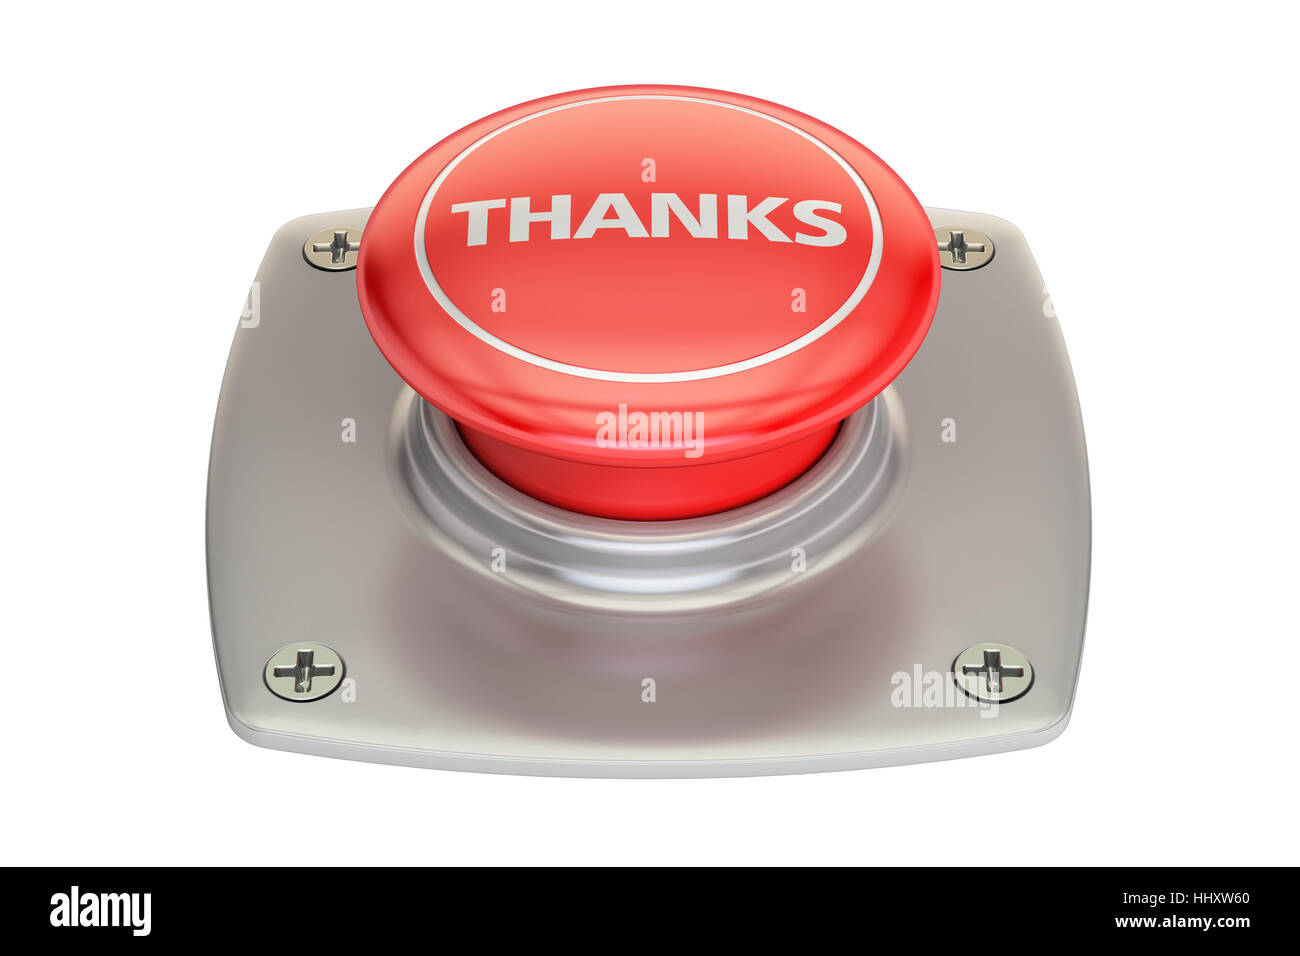 Thanks red button, 3D rendering isolated on white background - Stock Image